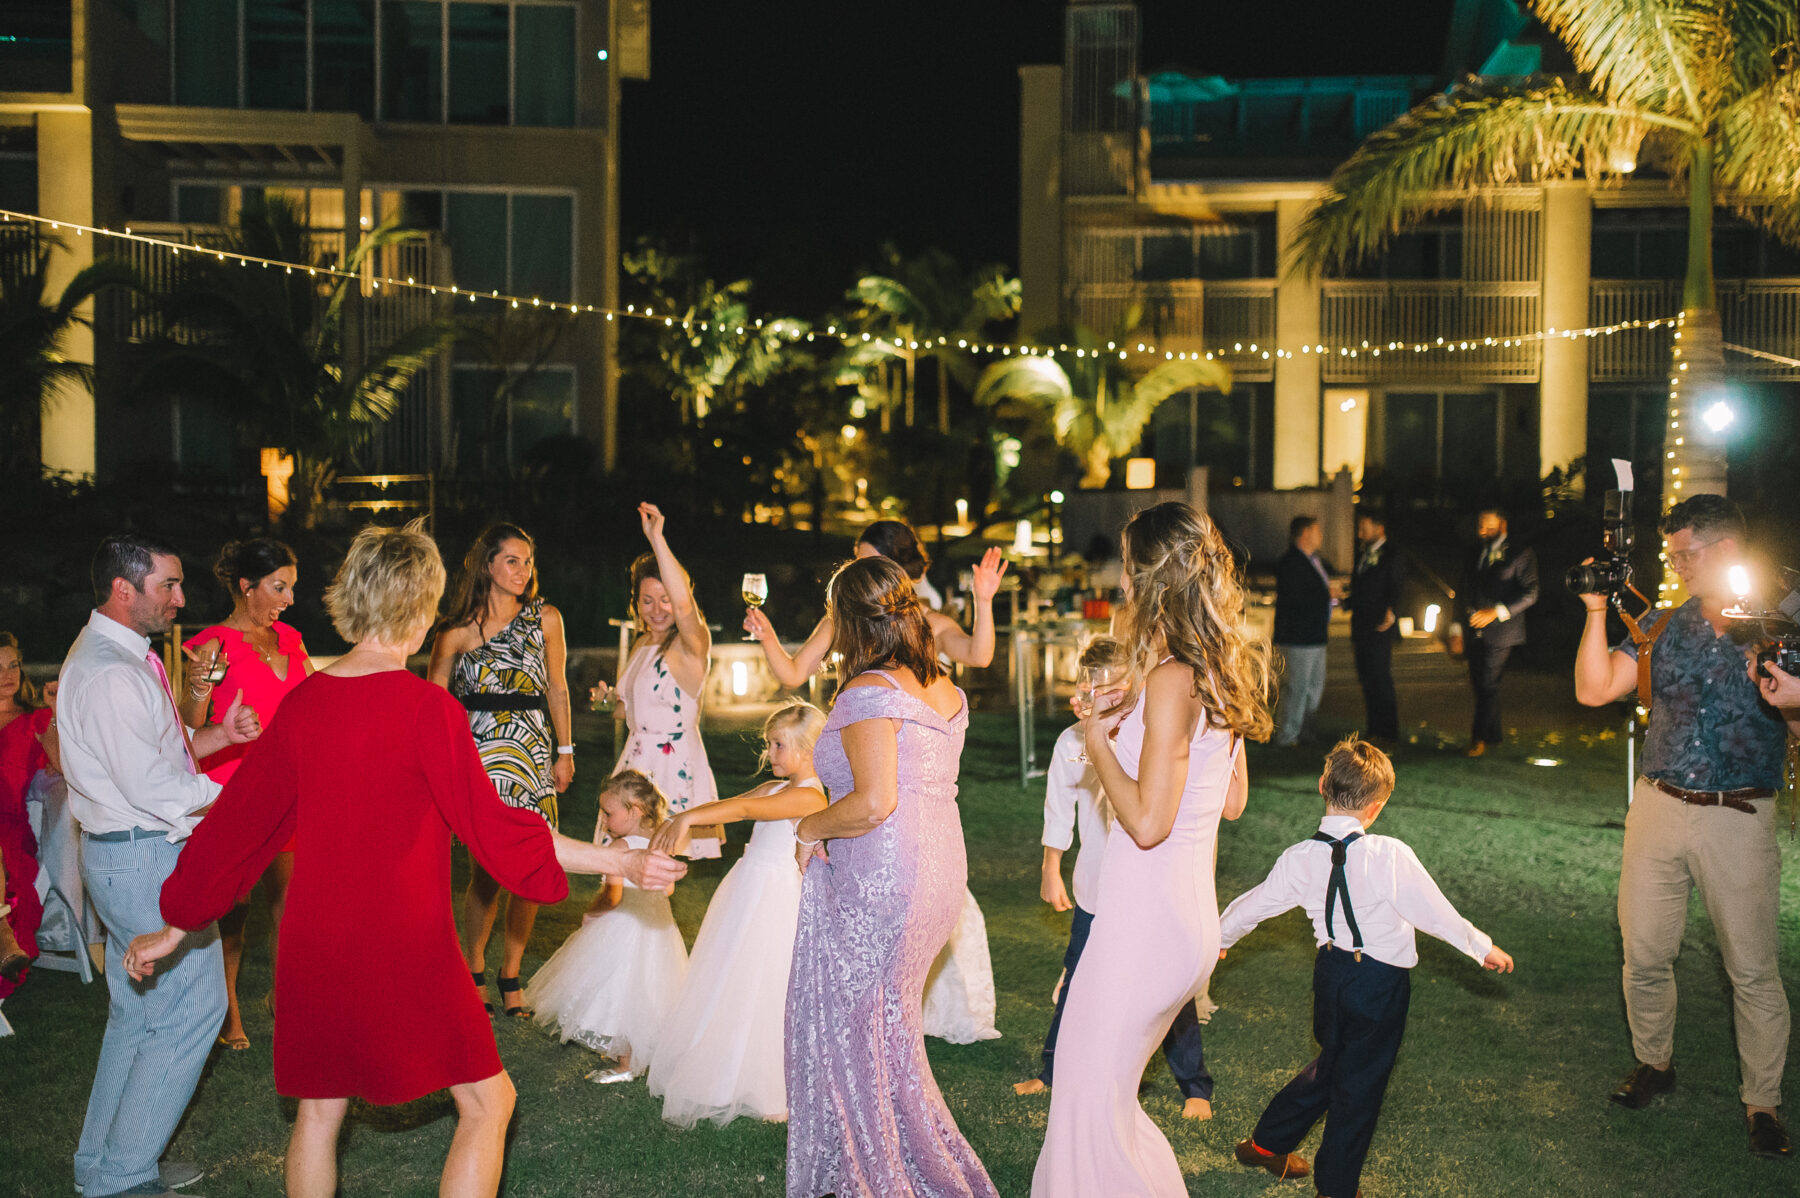 Wedding dancing: Intimate Caribbean Wedding by Details Nashville featured on Nashville Bride Guide